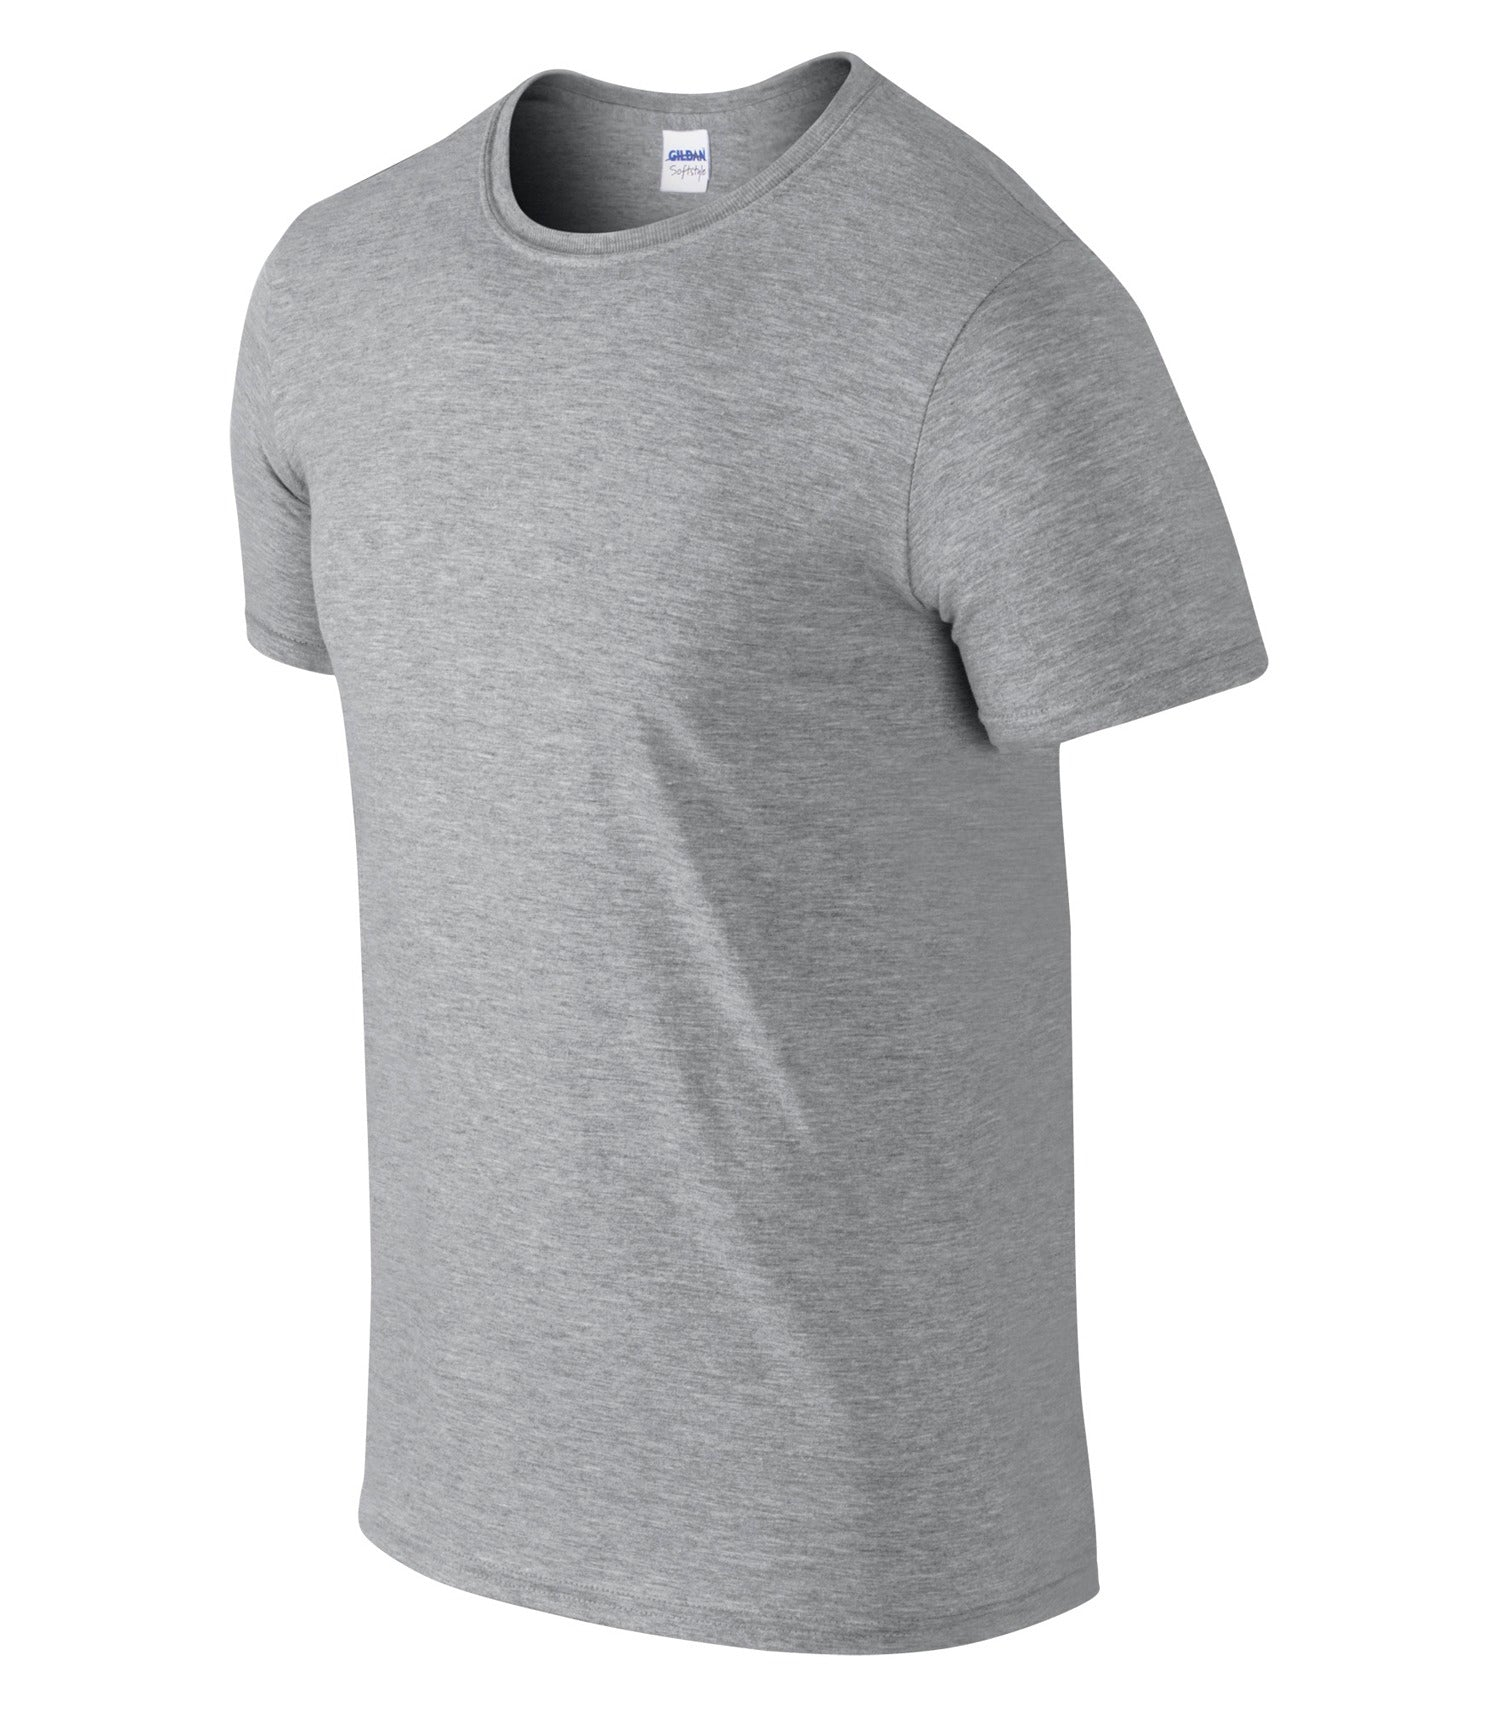 GILDAN® SOFTSTYLE® T-SHIRT #6400